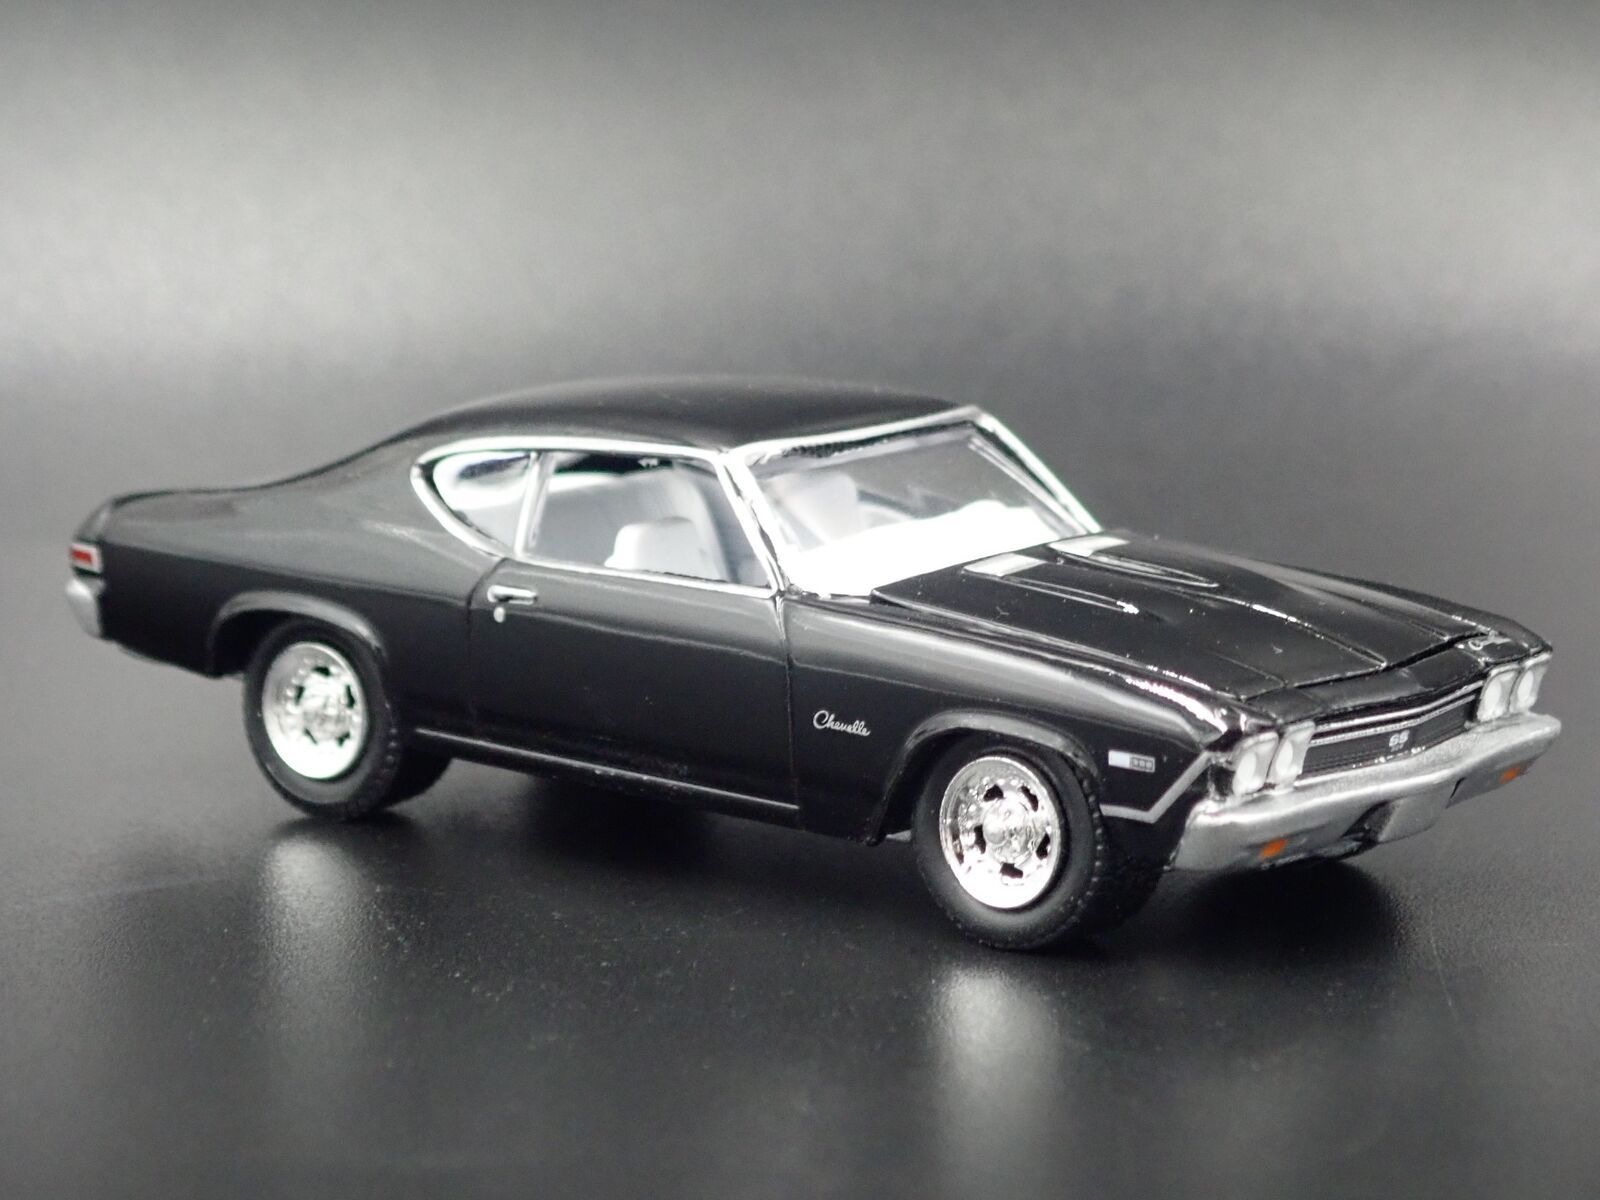 68 chevrolet chevelle ss (hollywood series 21 (bad boys ii) - 2018